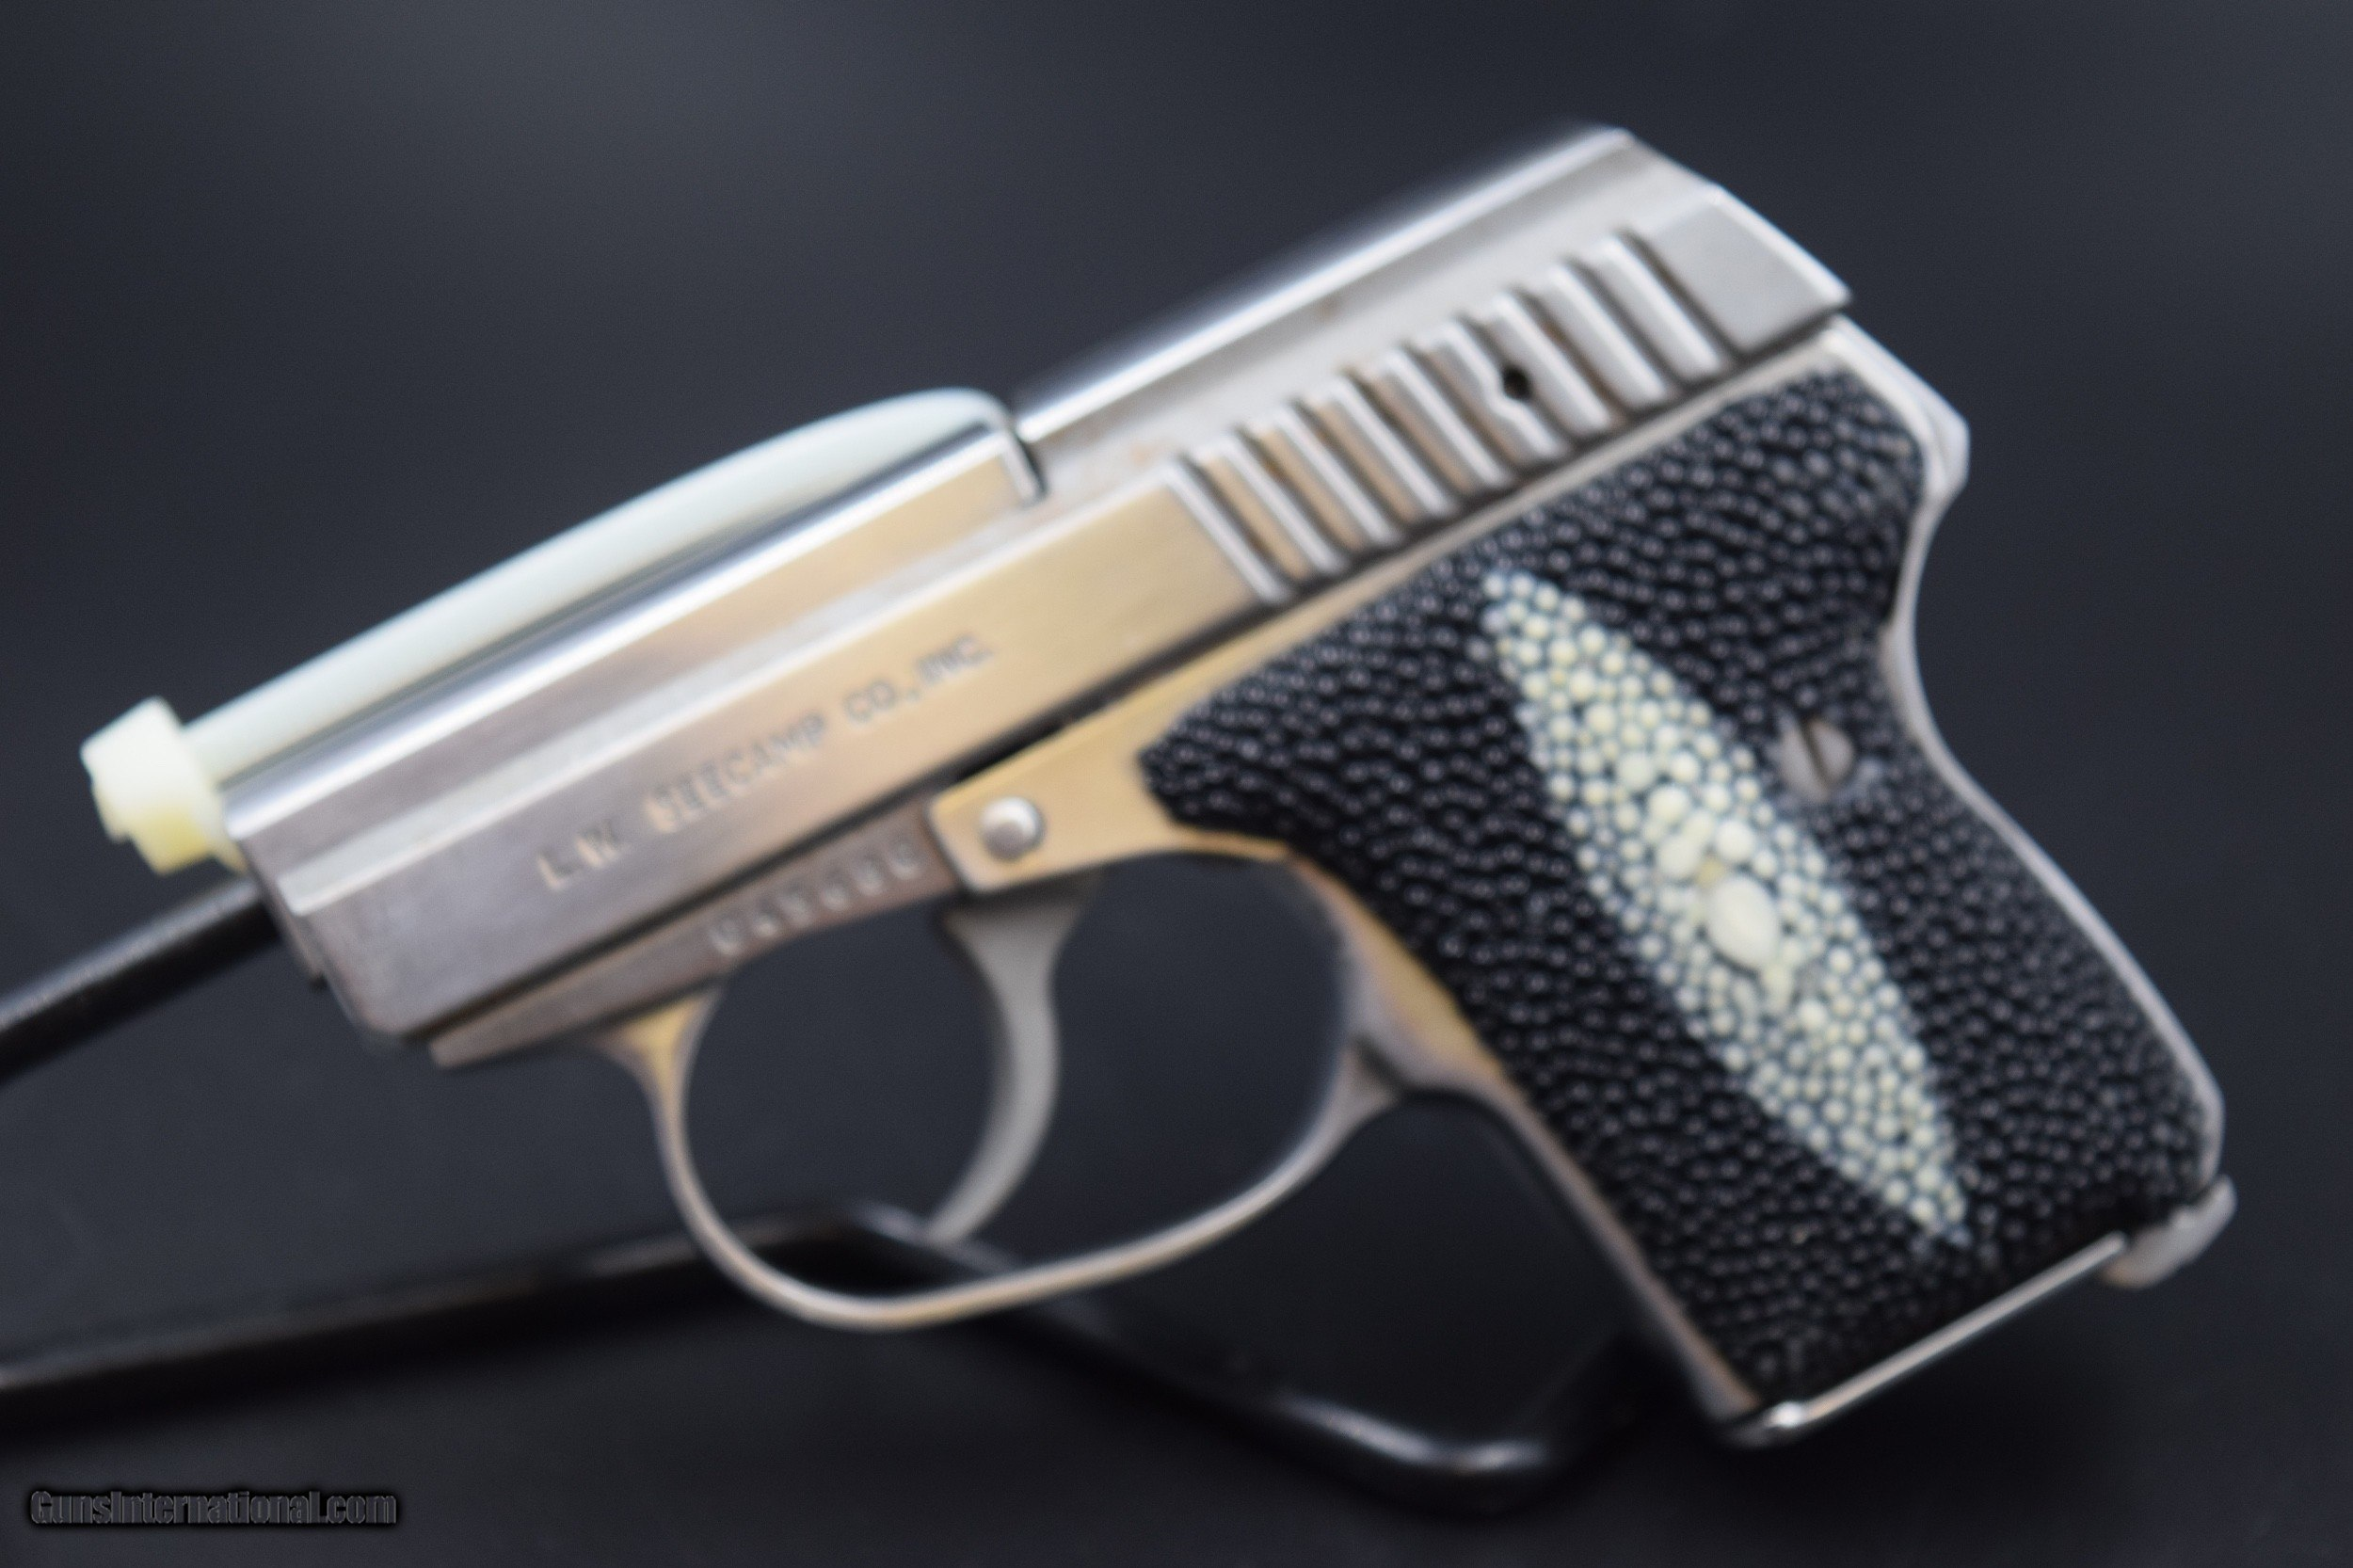 SEECAMP LWS-32 PISTOL WITH TWO MAGS